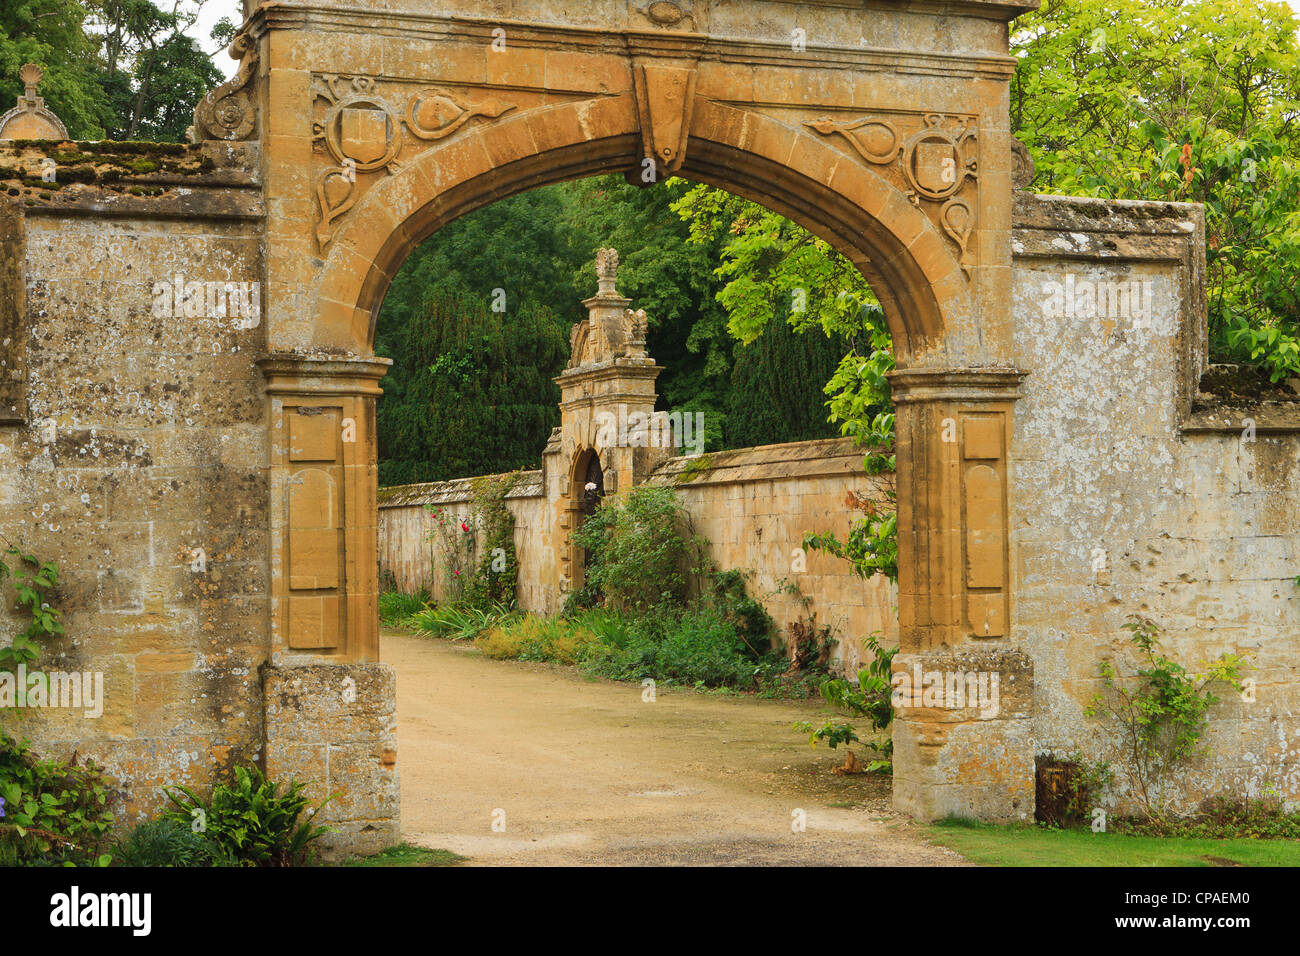 Stonewall entrance to Stanway House, a castle in Cotswolds in Southwestern England. Stock Photo